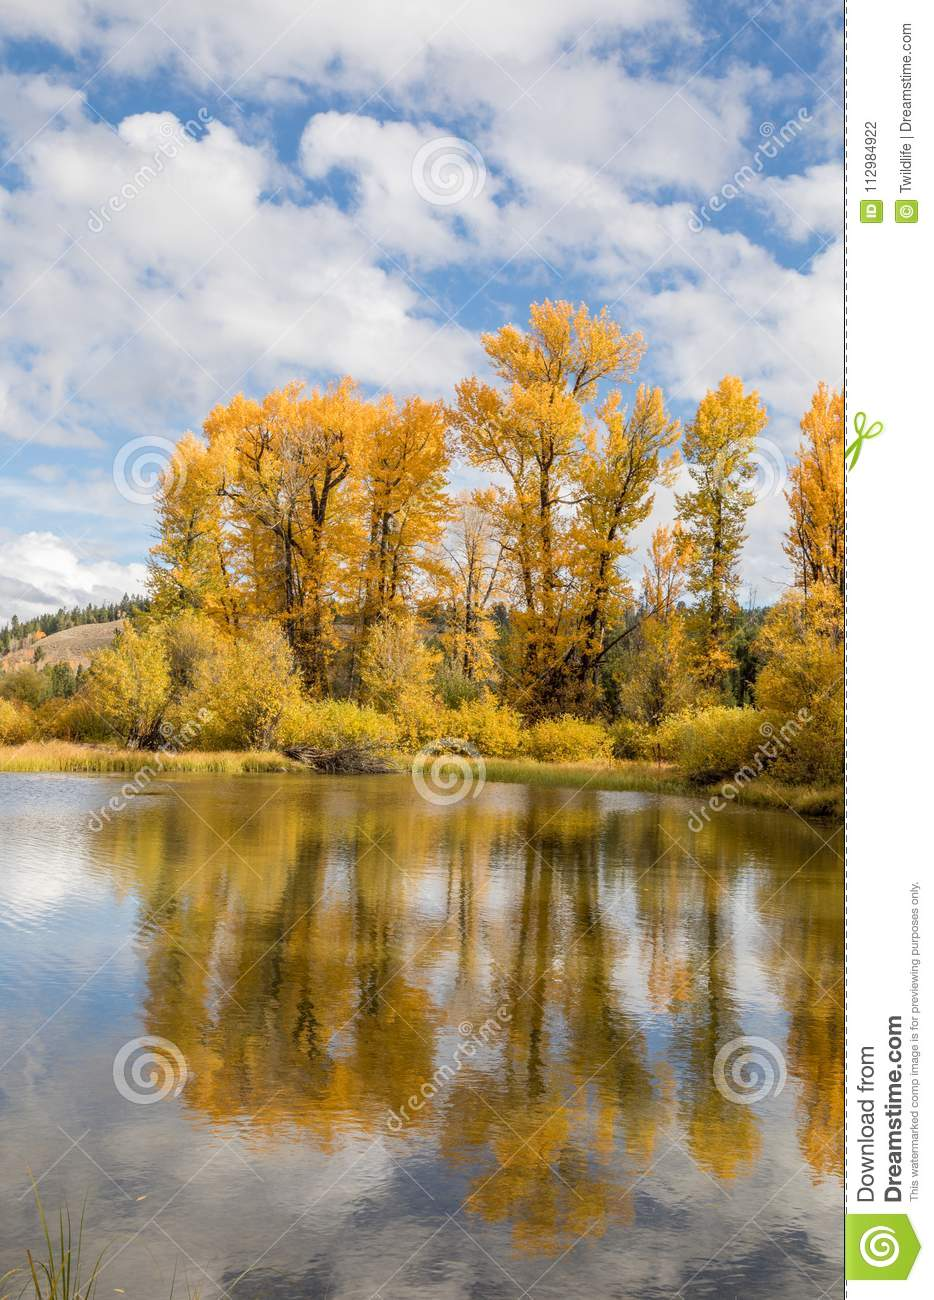 Scenic Autumn Reflection in Wyoming